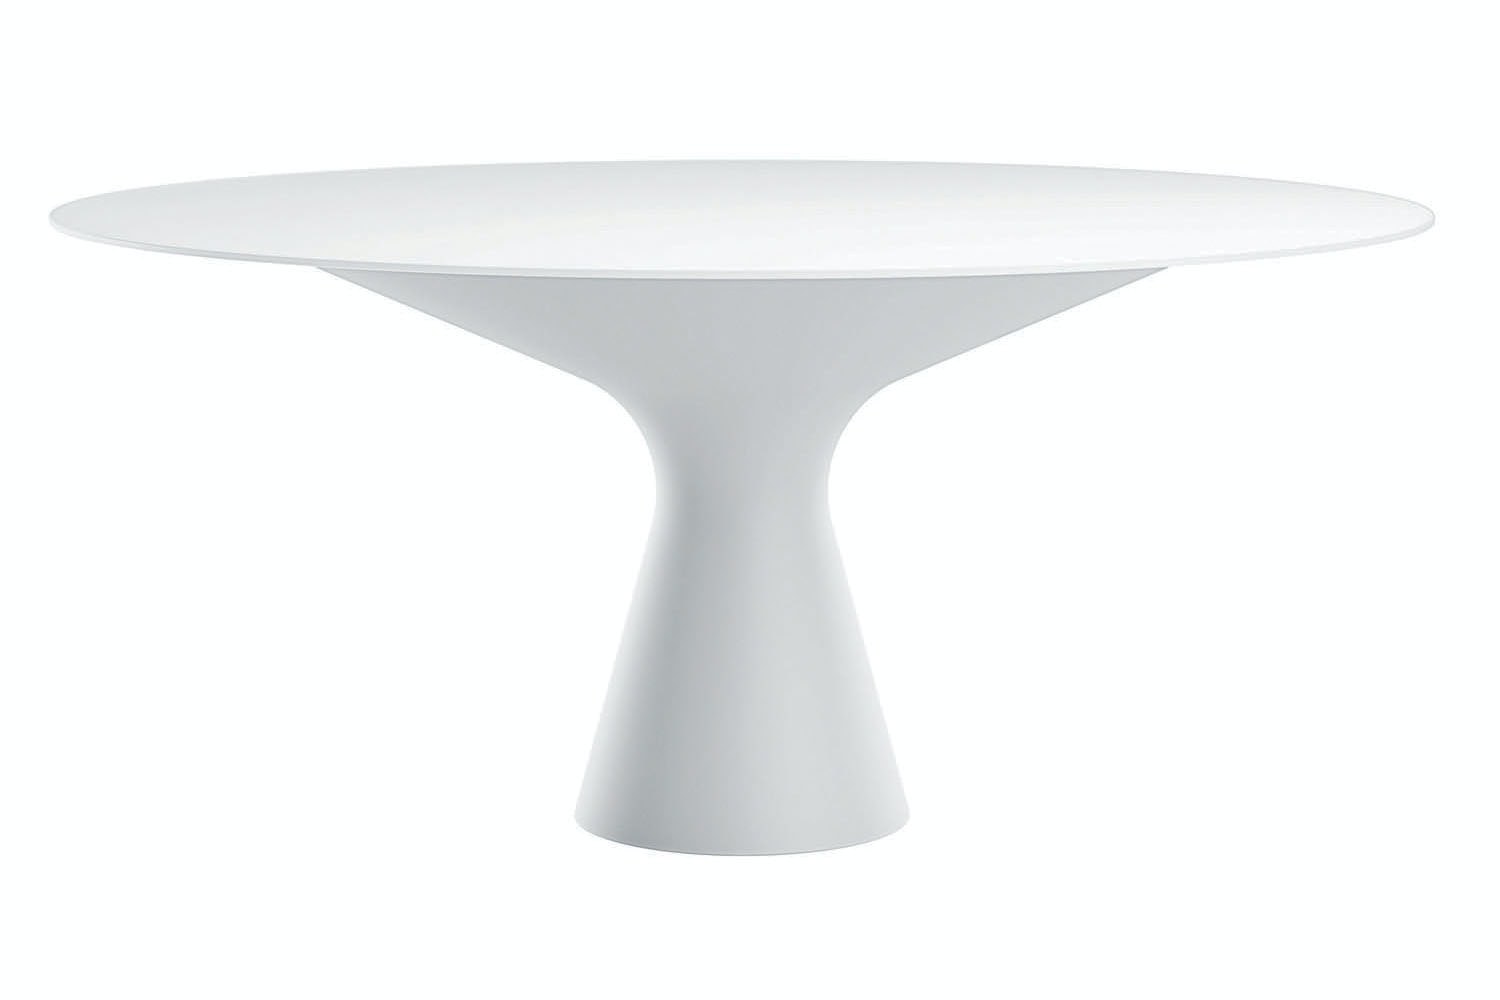 Blanco 2577/C Table by Jacopo Zibardi for Zanotta